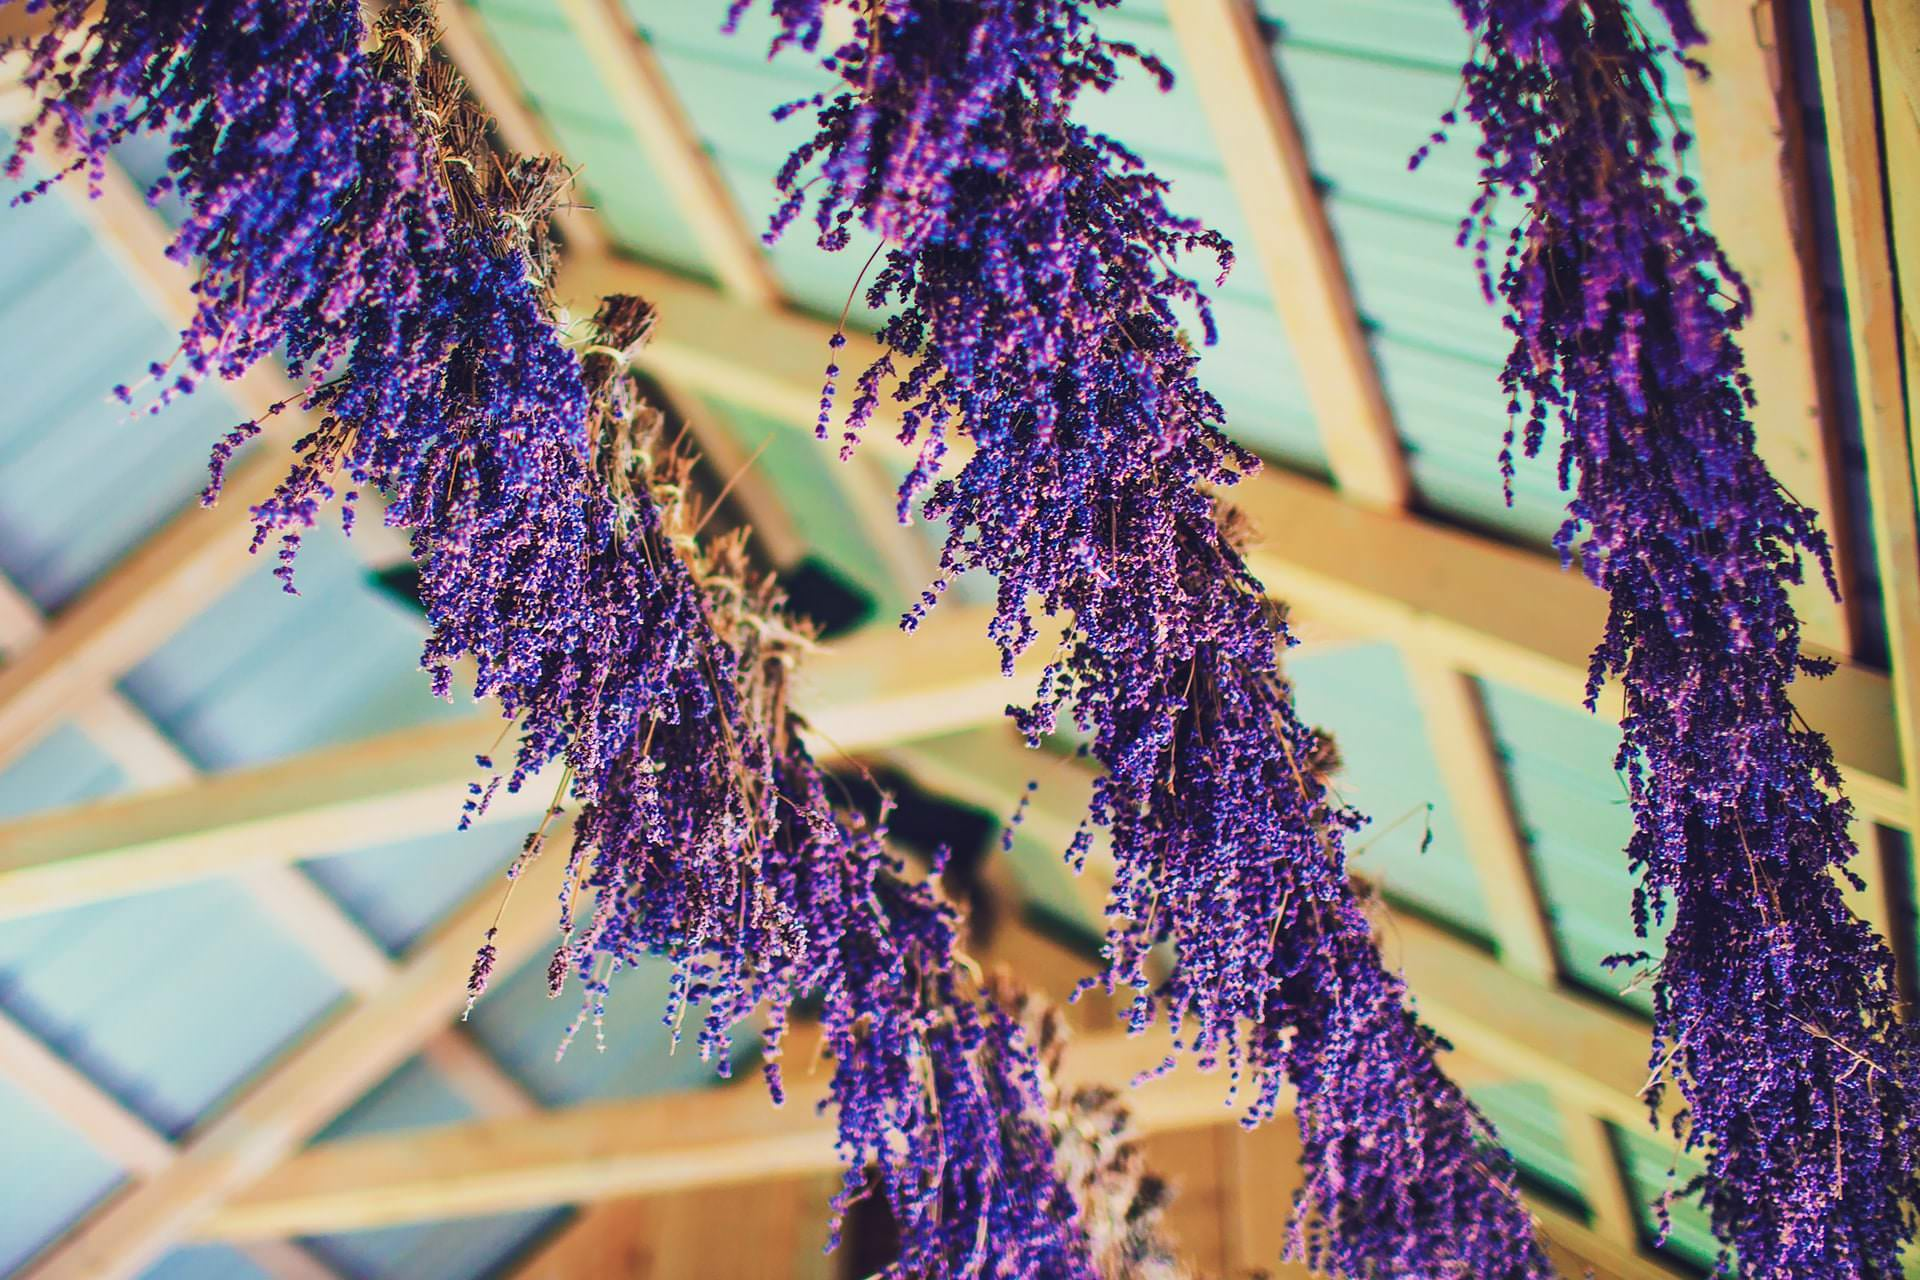 Fresh lavender flowers hung from the ceiling at Terre Blue Lavender Farm